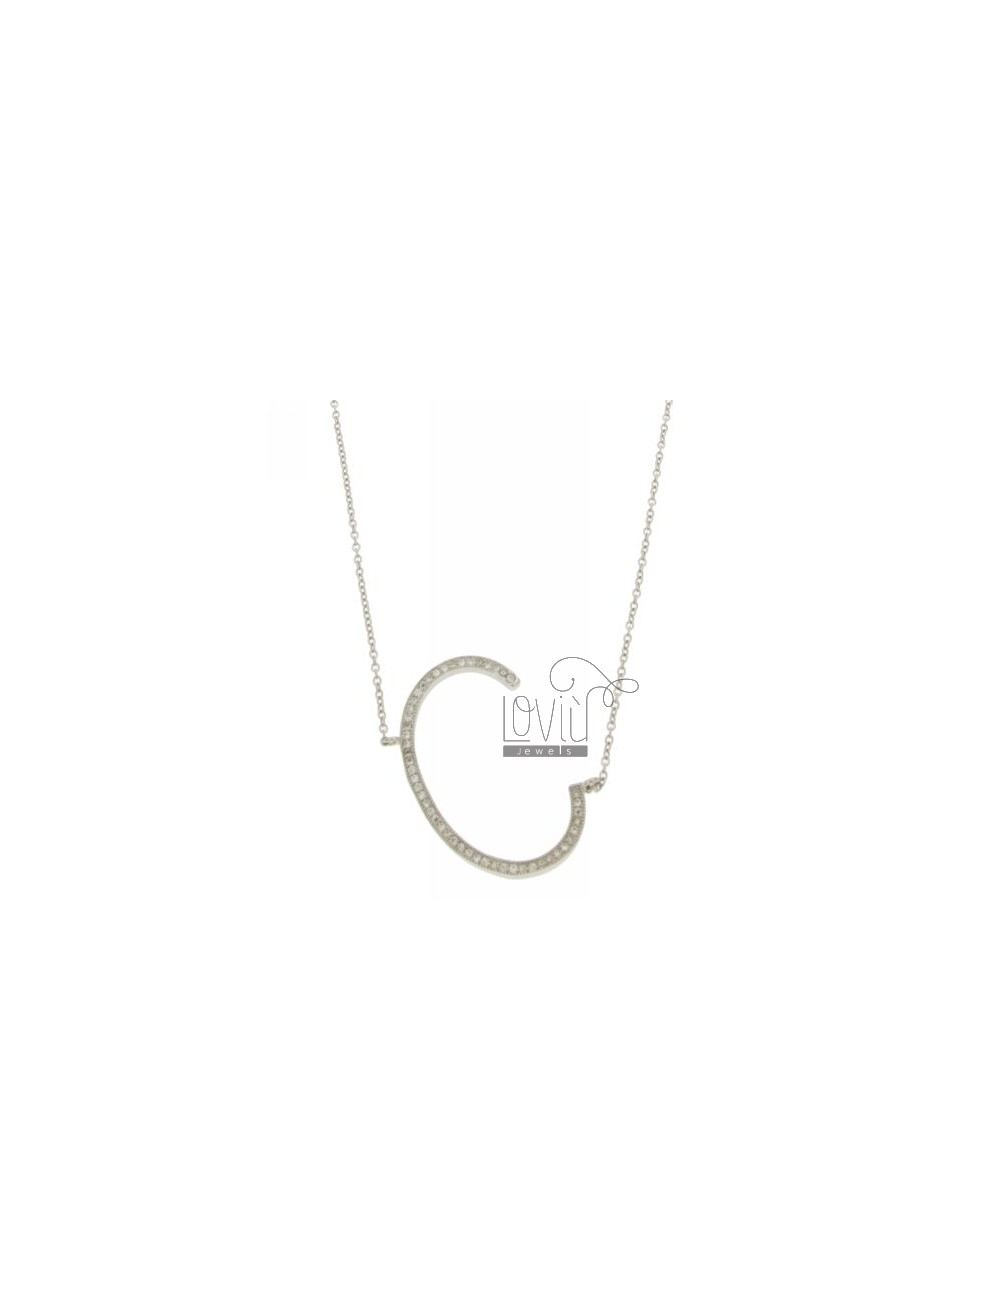 COLLIER BY LETTER C MM 32X21 SILVER TITLE AND ZIRCONIA CM 925 ‰ 45